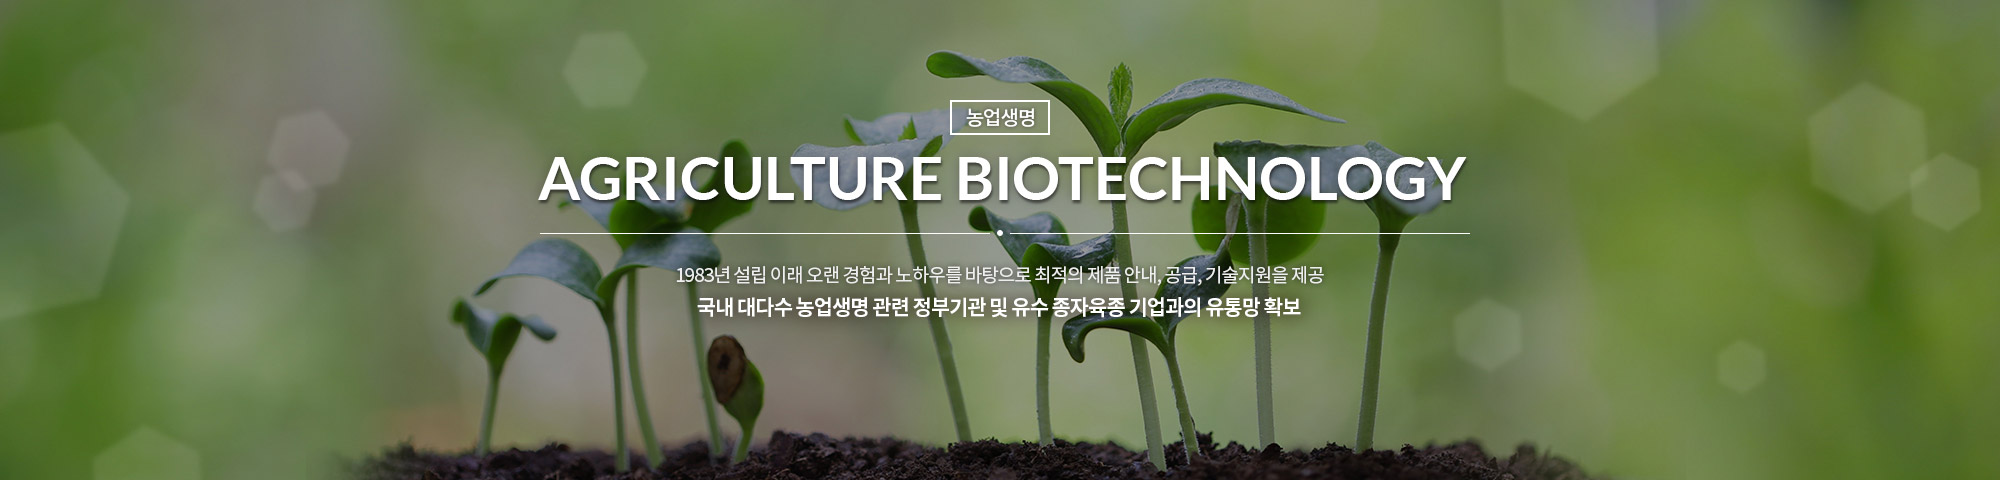 AGRICULTURE BIOTECHNOLOGY